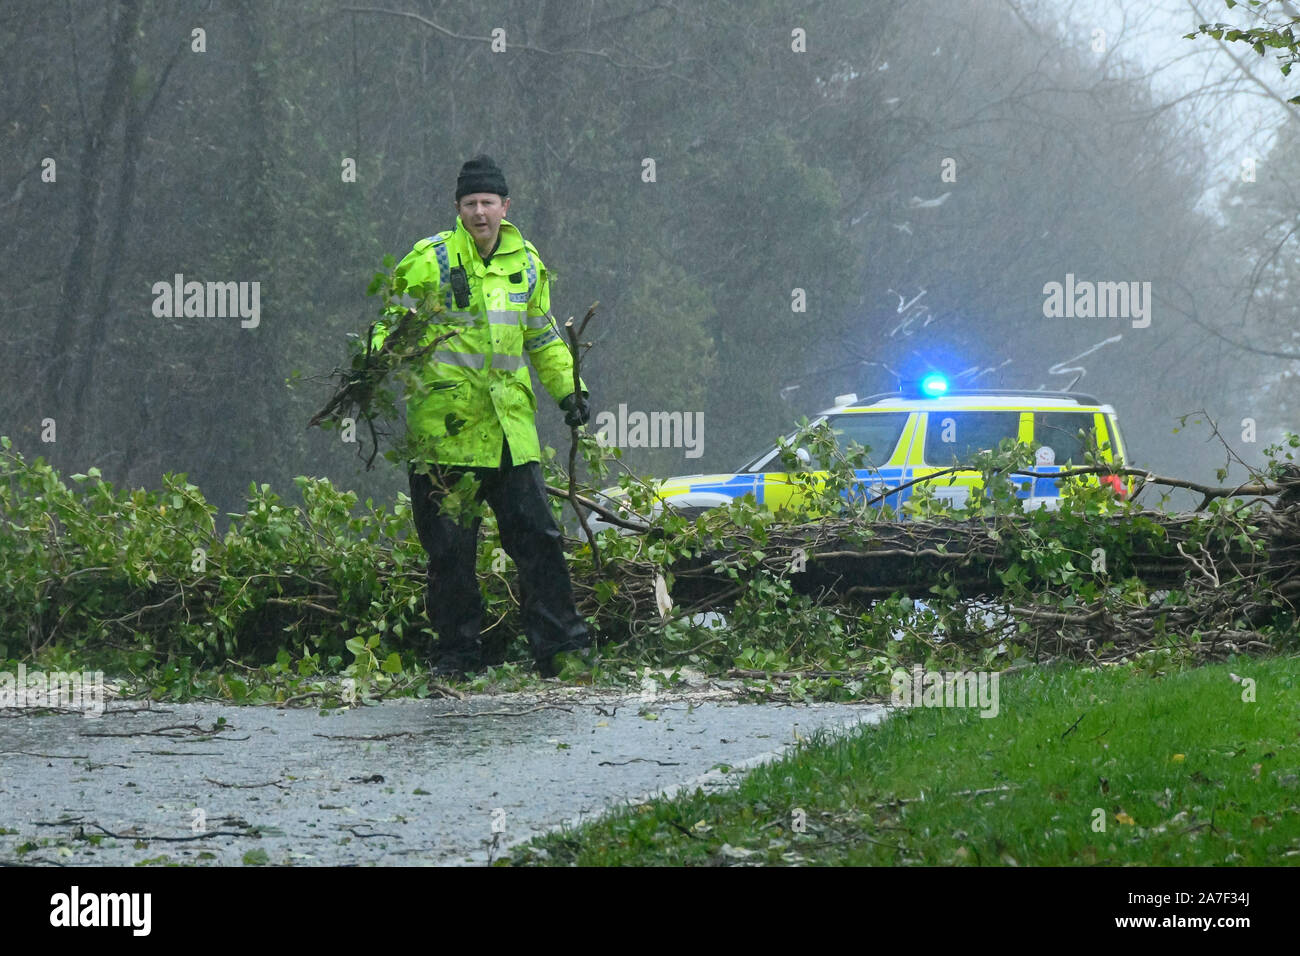 Dorchester, Dorset, UK. 2nd Nov, 2019. UK Weather: A Police officer helps clear up the fallen tree after stormy winds bring down trees across the A35 near Dorchester in Dorset closing the road. Picture Credit: Graham Hunt/Alamy Live News Stock Photo